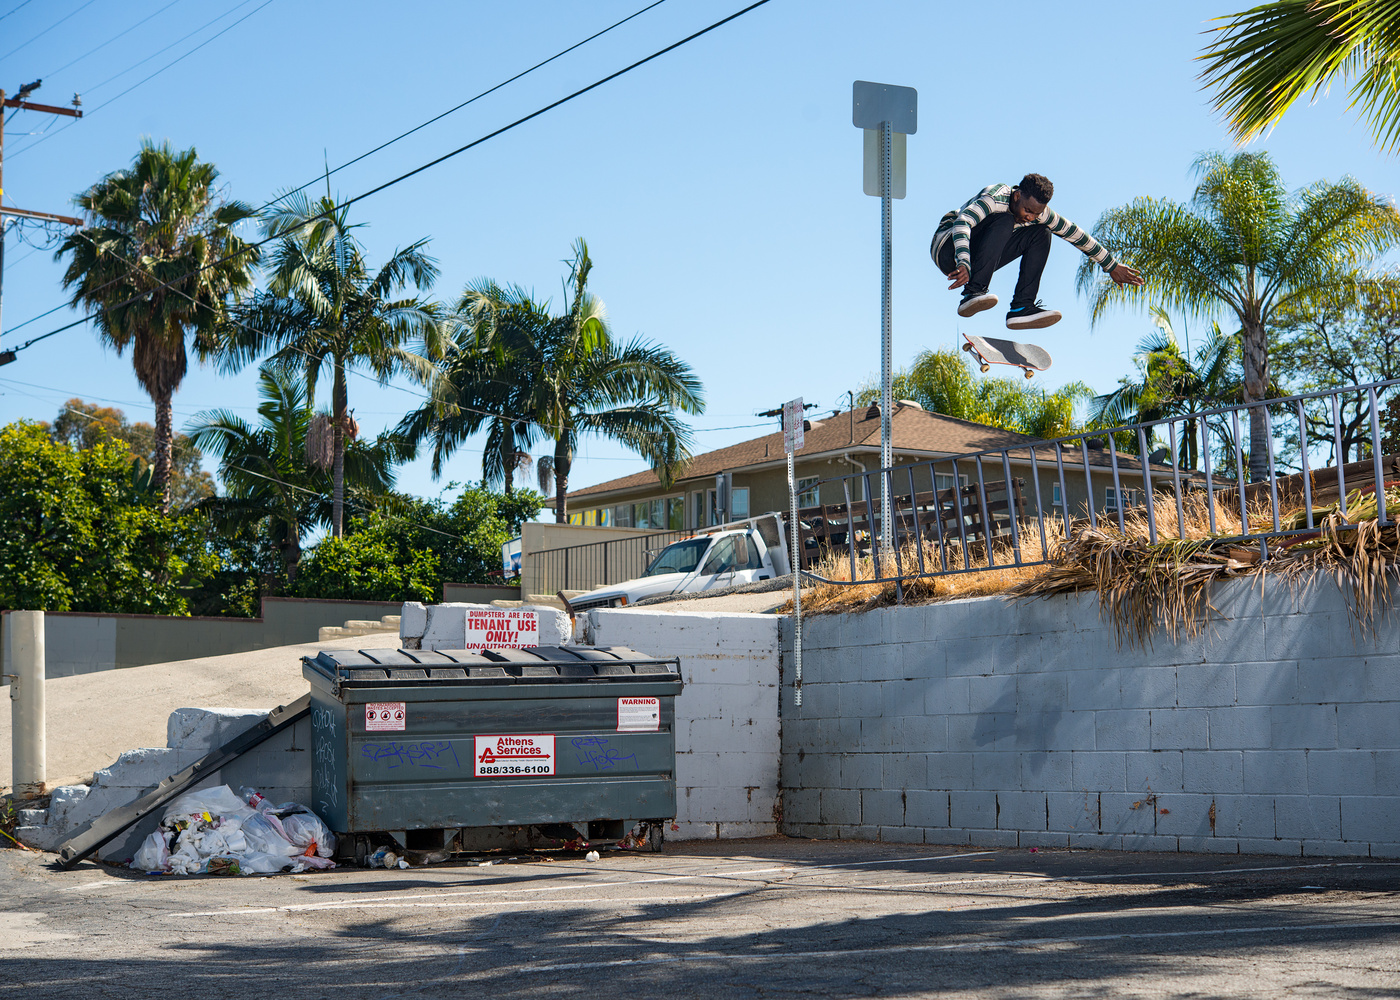 Reemo Pearson / / Kickflip by Will Fisher